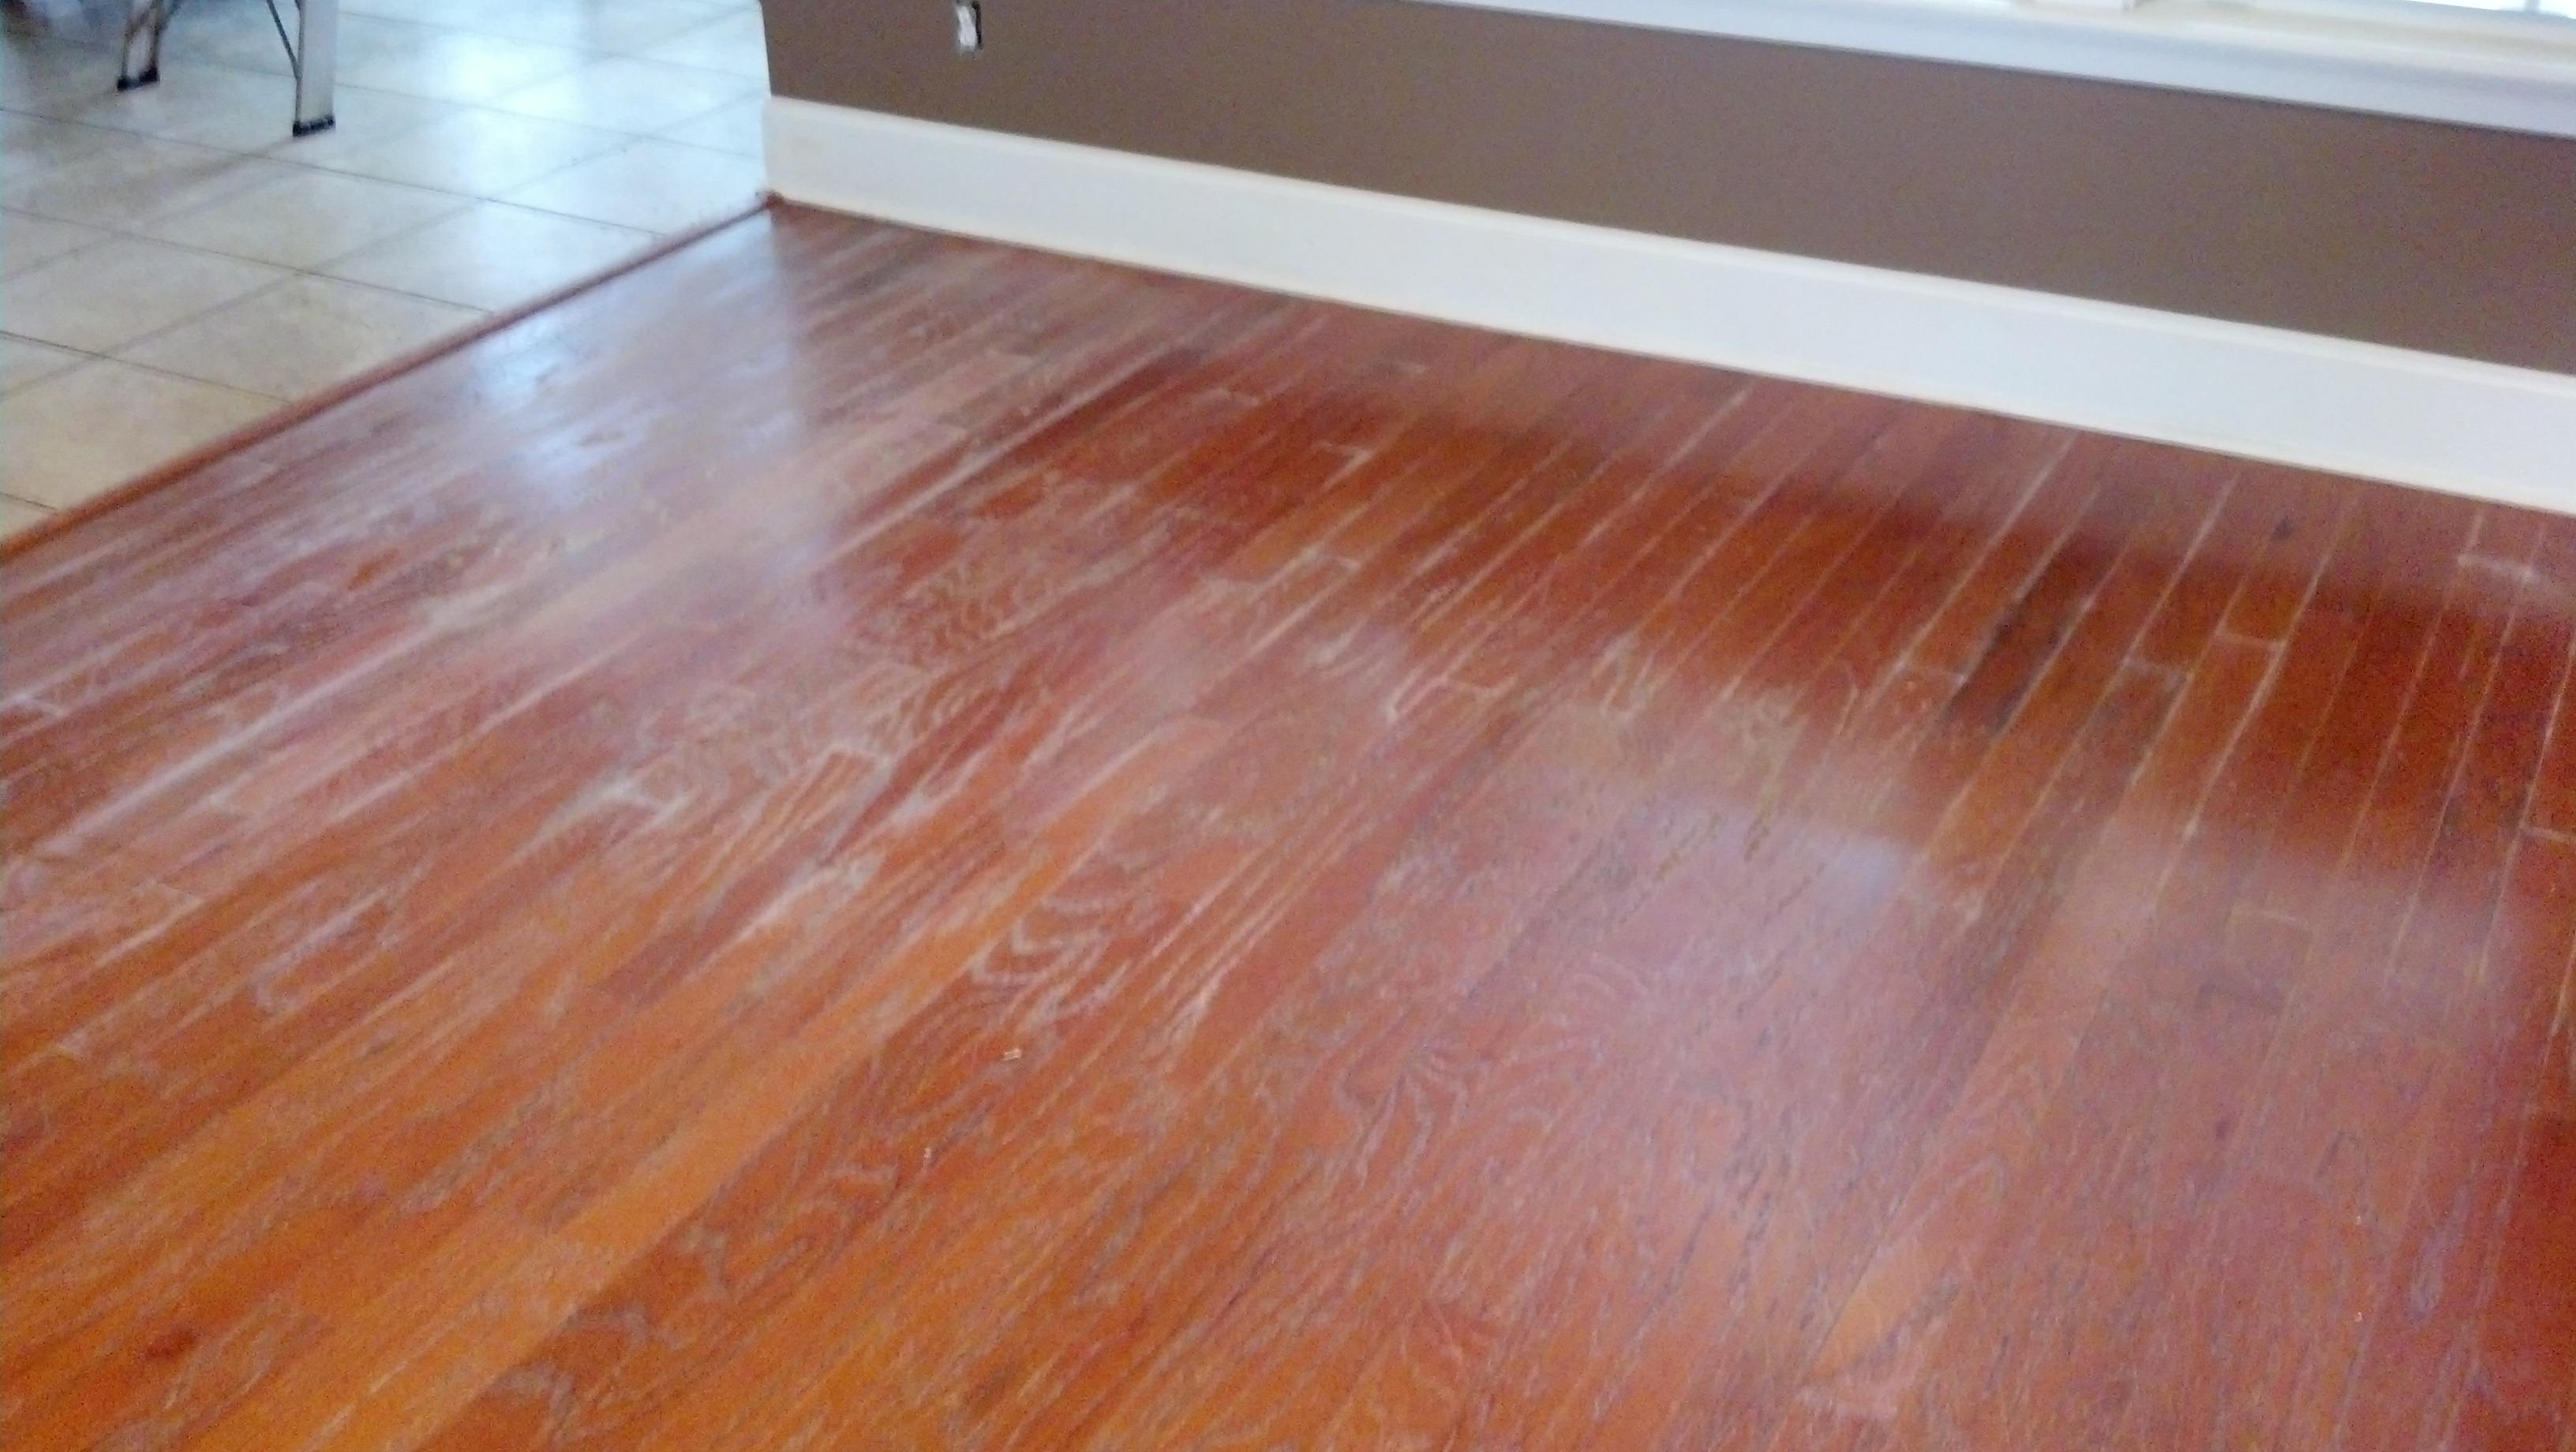 Carpet Cleaning Tallahassee Fl - Extreme Carpet Care Inc